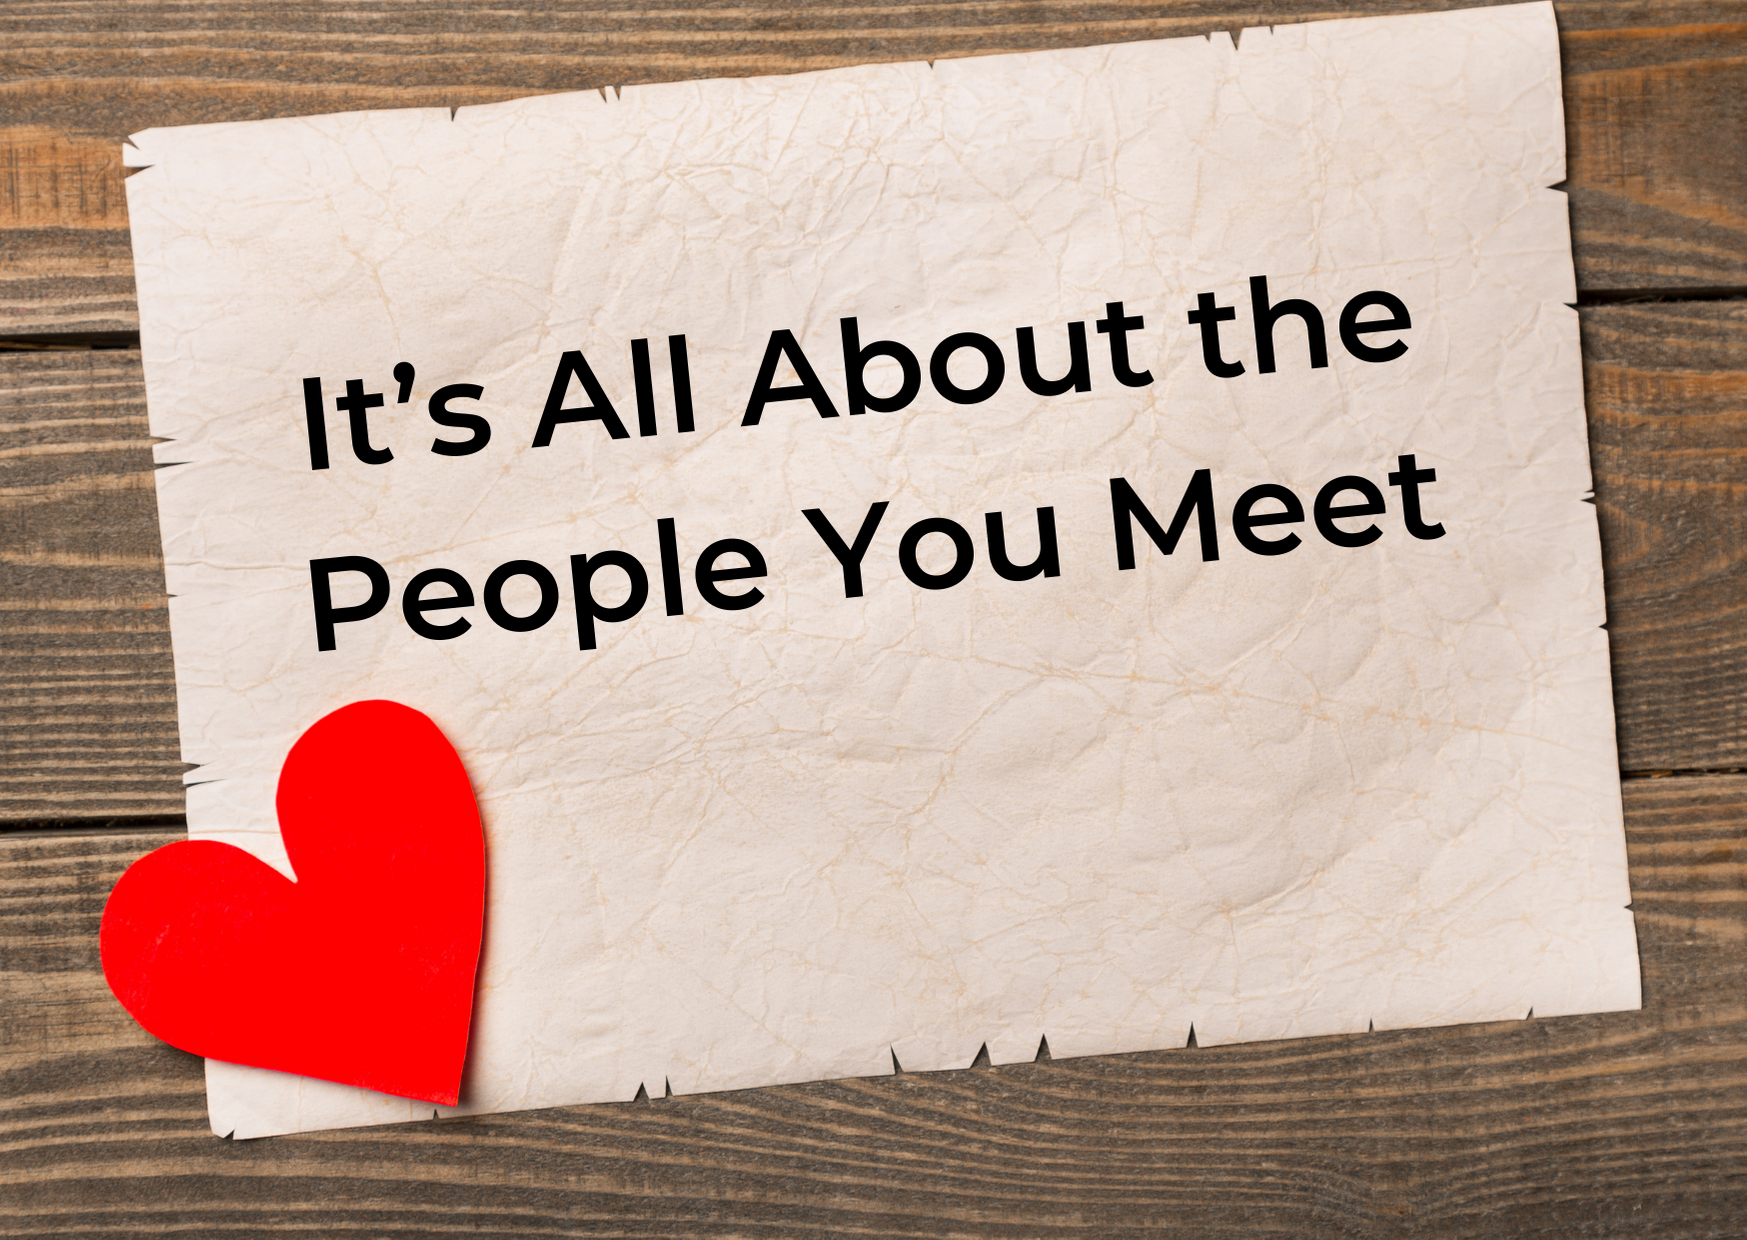 It's All About the People You Meet